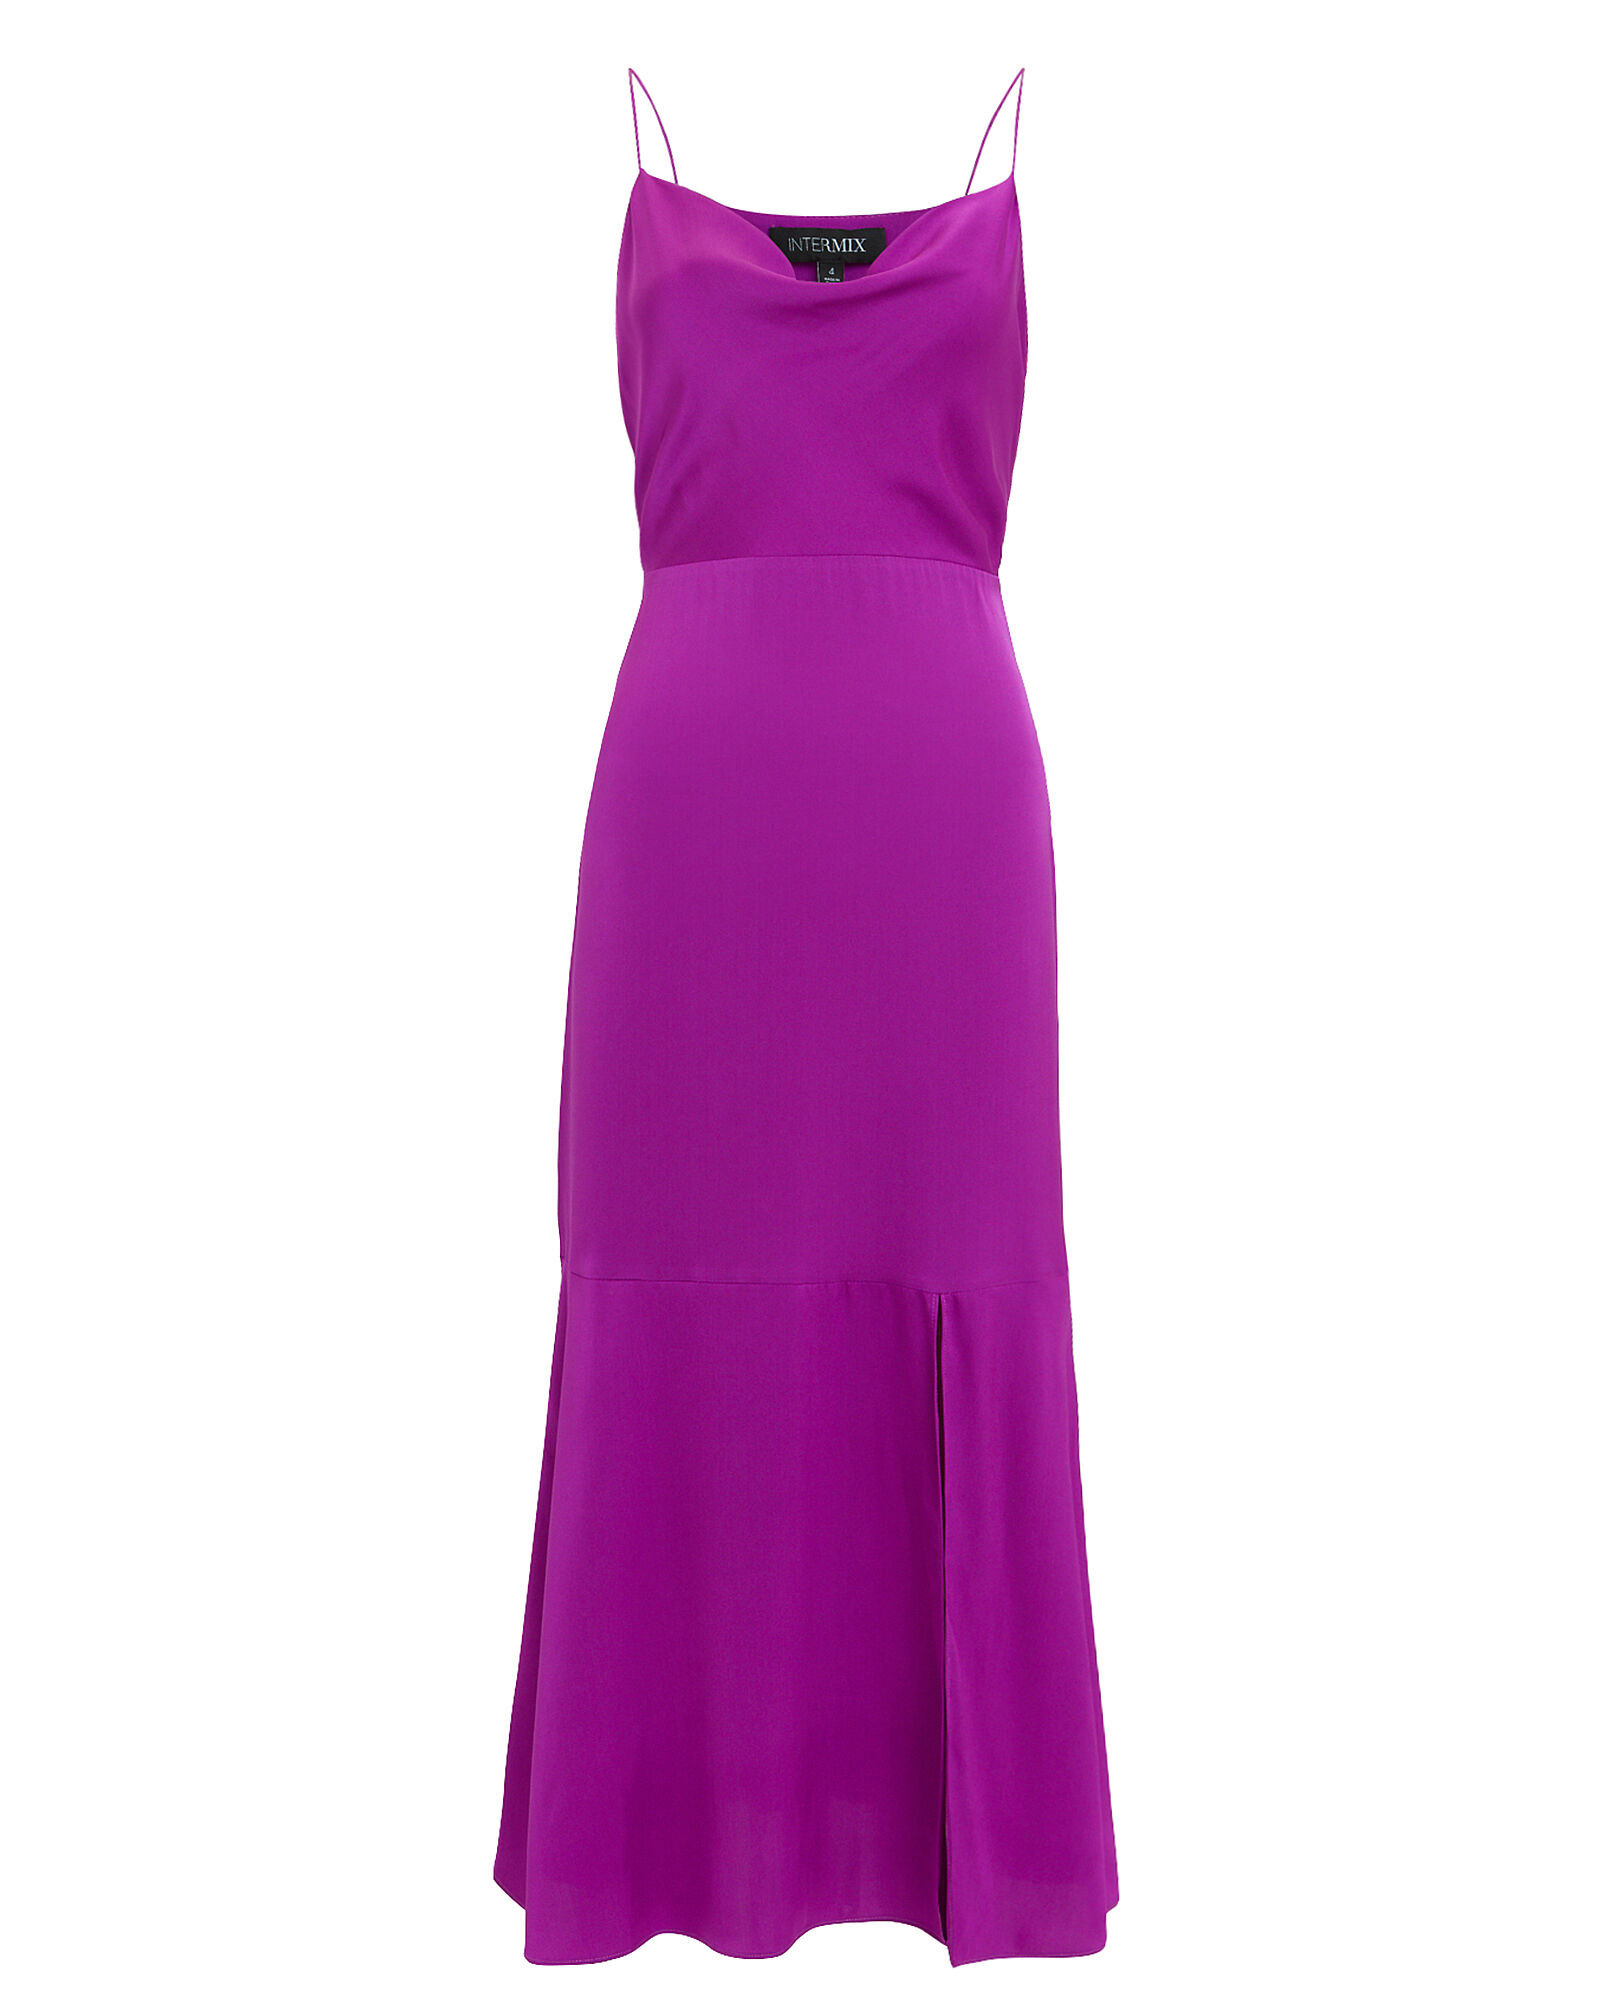 Paris Silk Slip Dress, PURPLE, hi-res